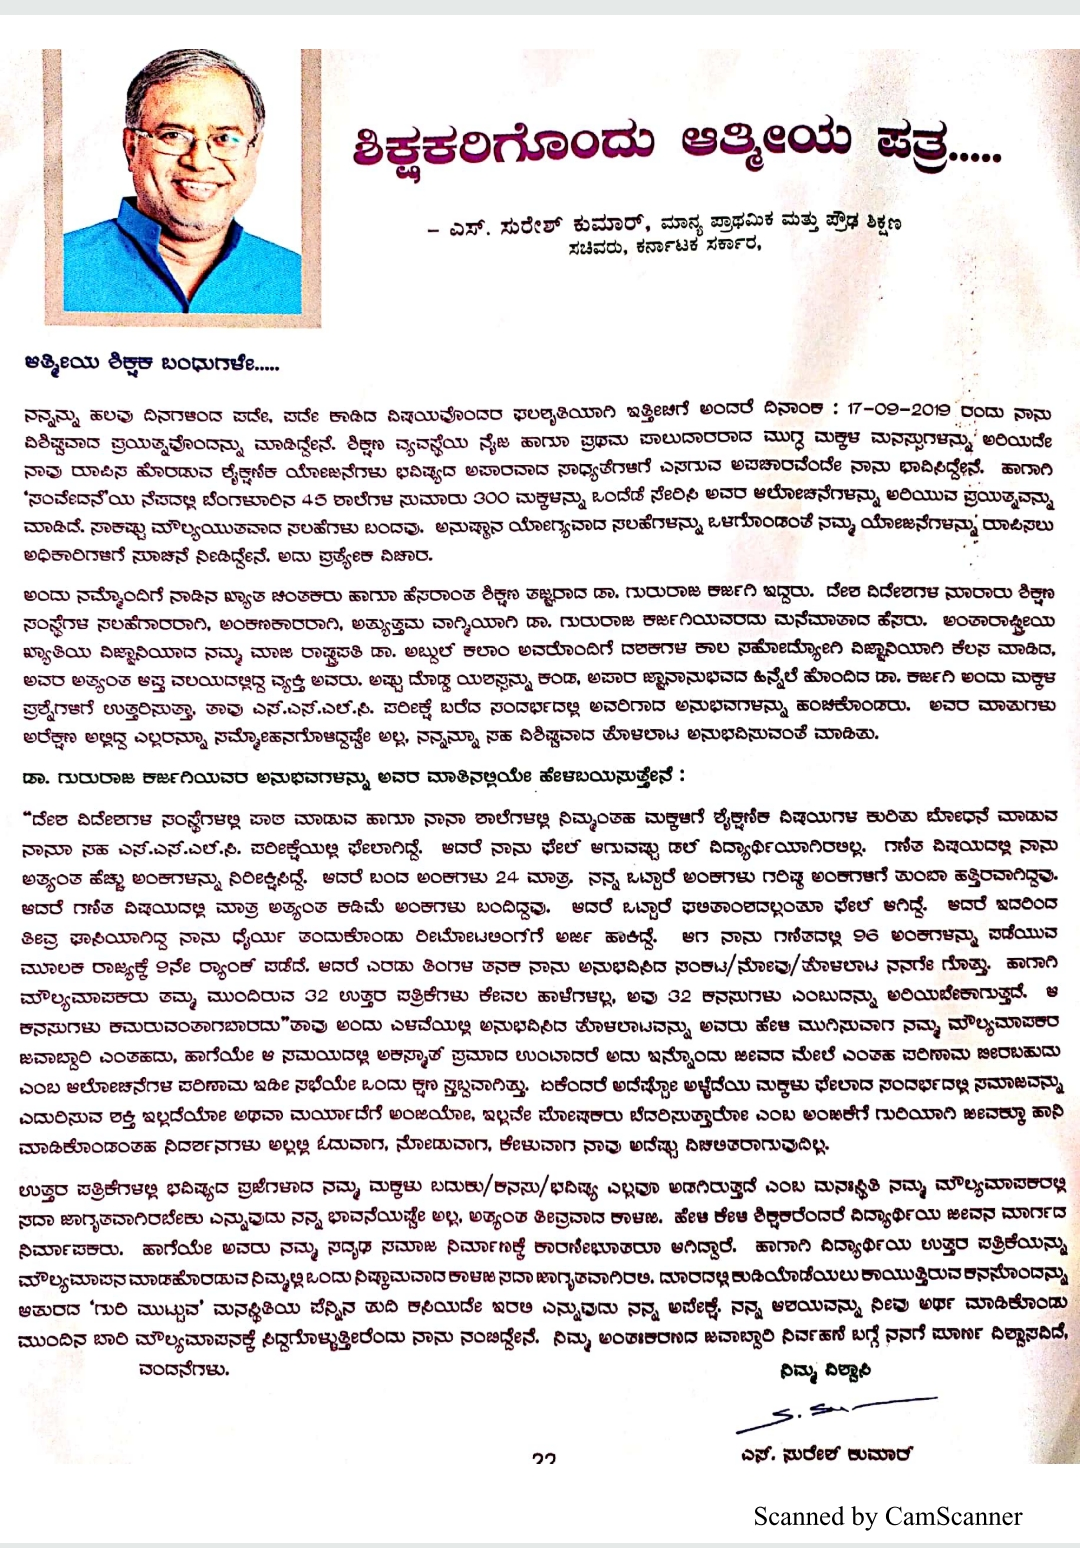 State Minister of Education Shri Suresh Kumar wrote a dear letter to all the teachers of the state